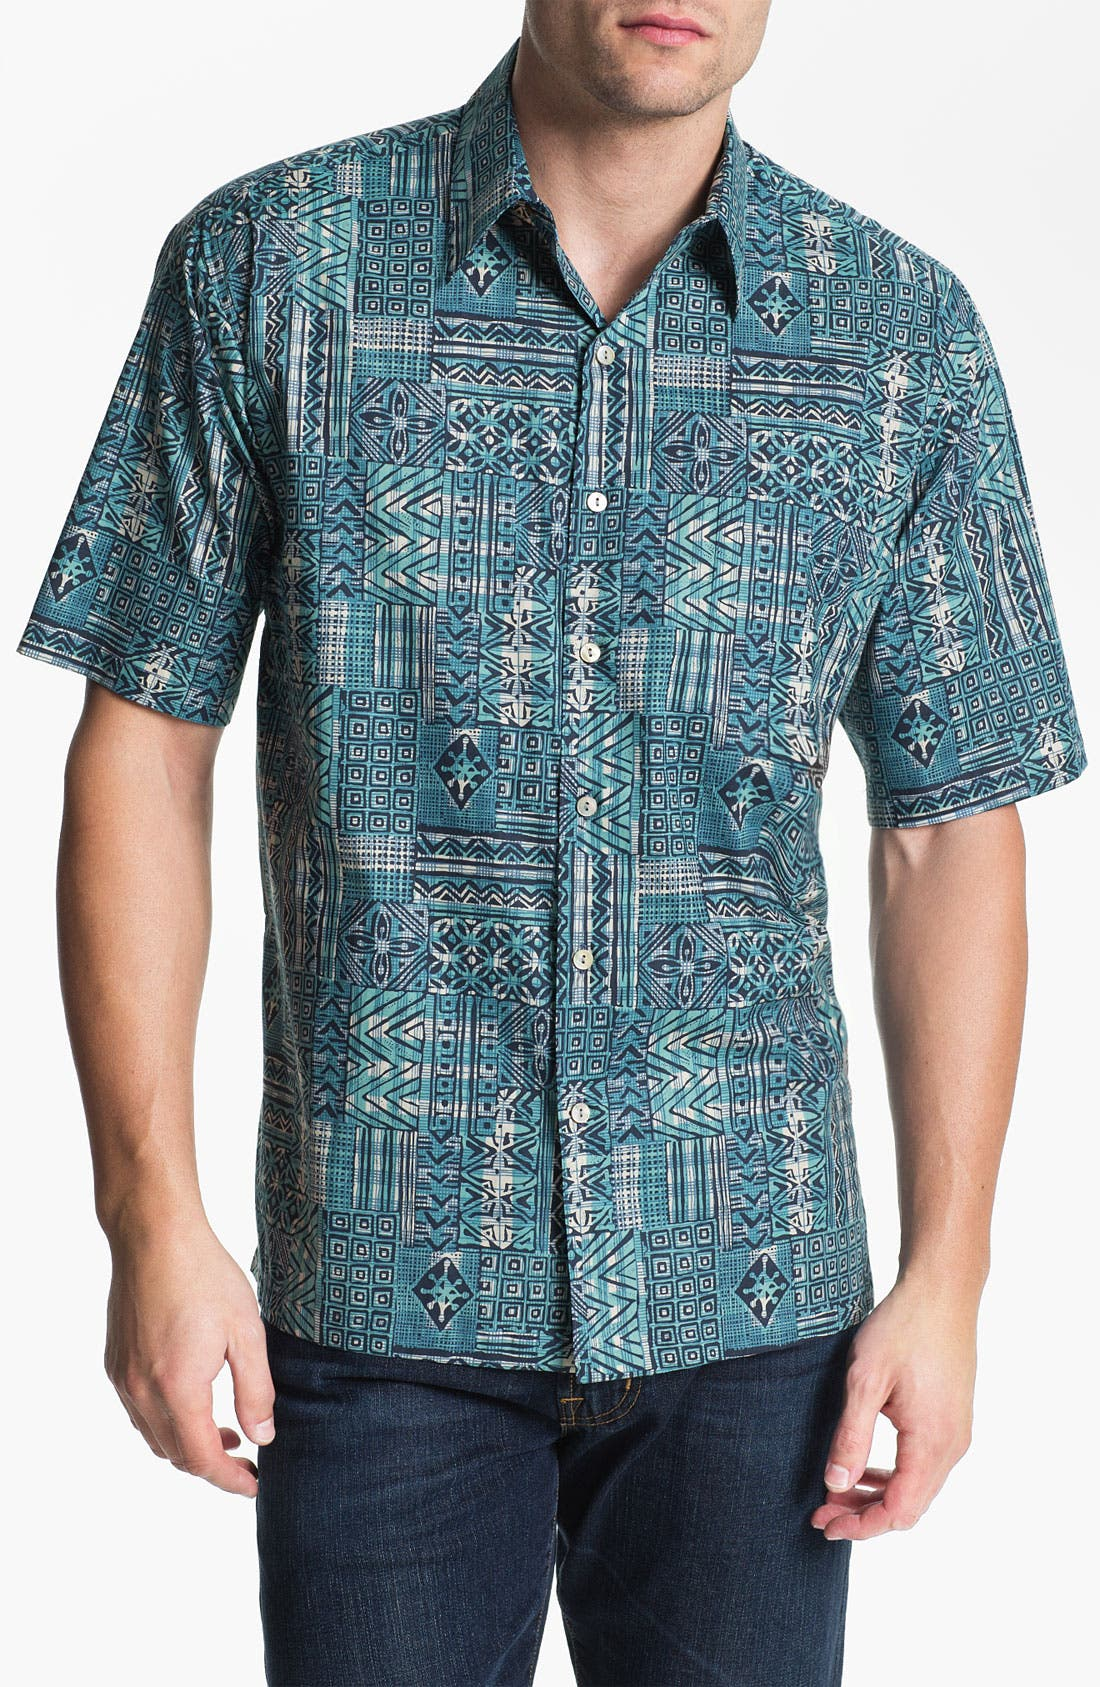 Alternate Image 1 Selected - Tori Richard 'Gridlock' Cotton Campshirt (Big & Tall)